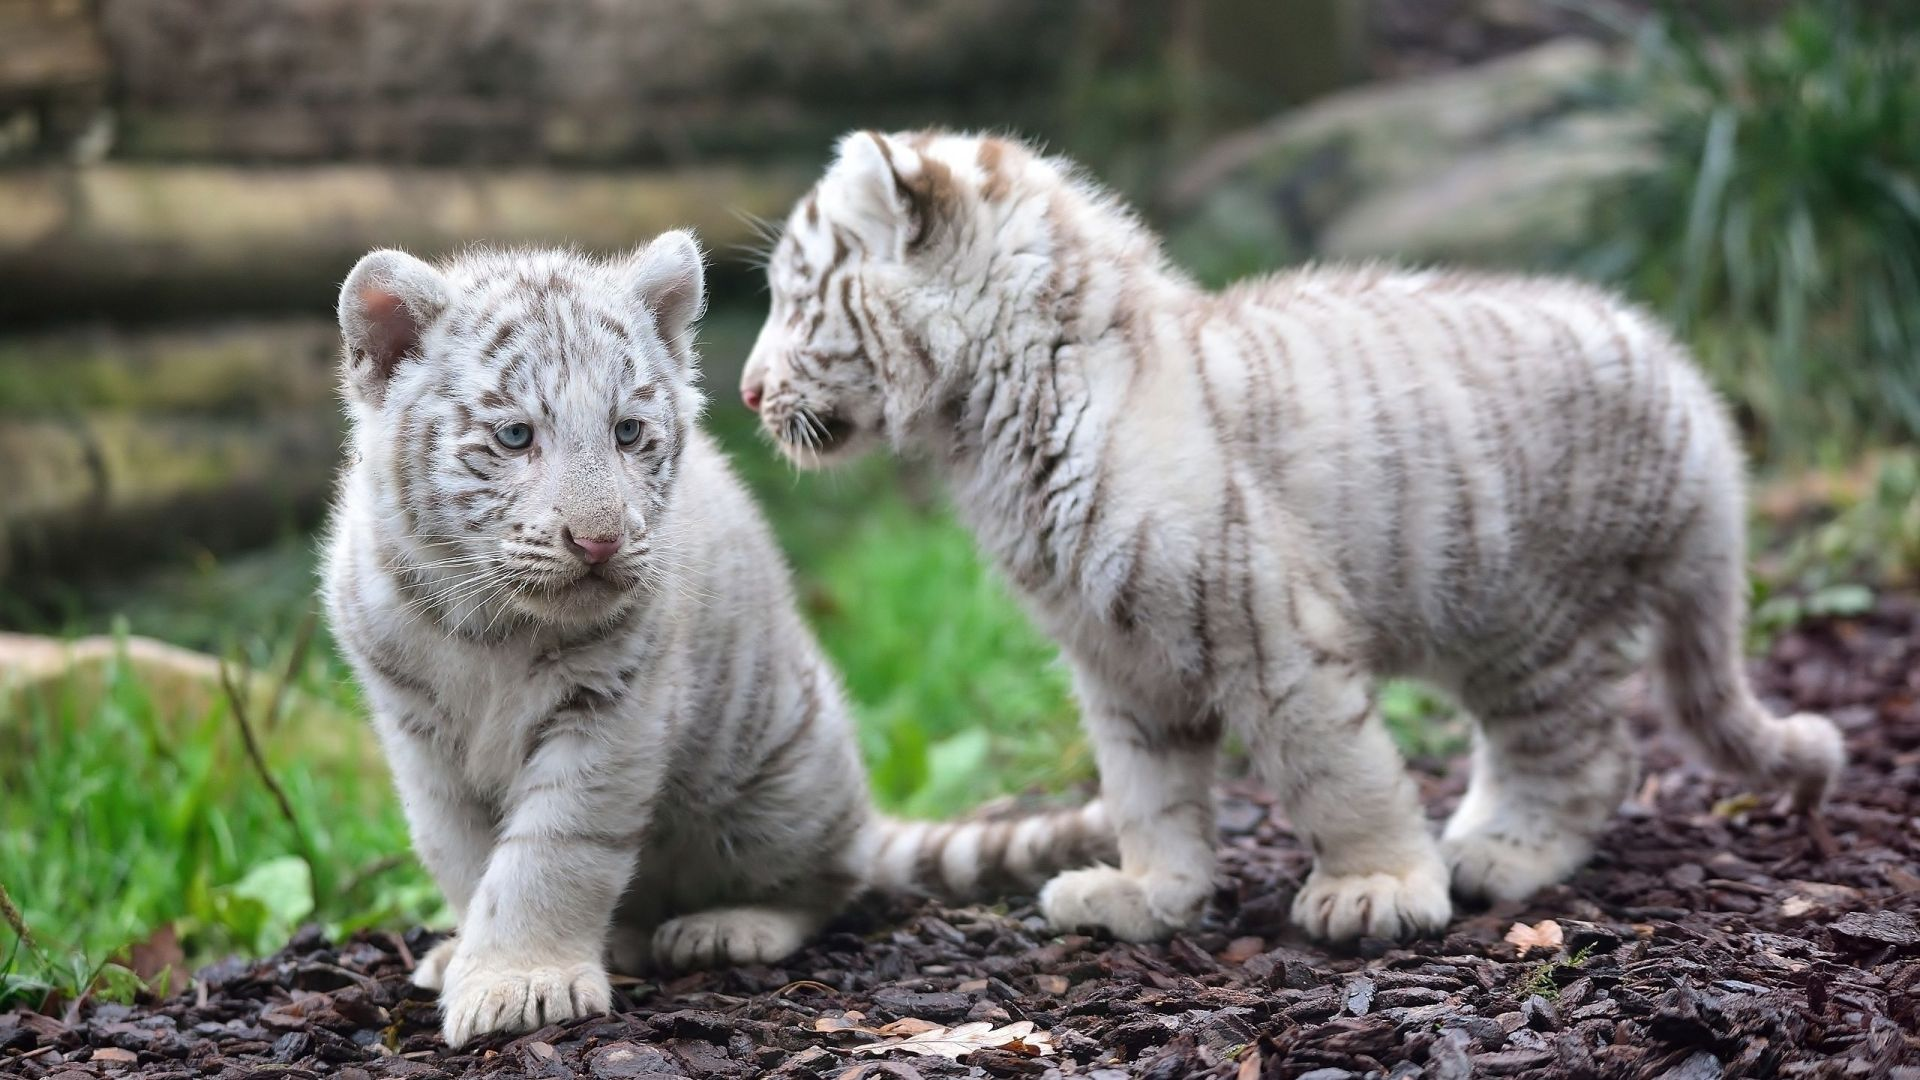 White Tiger Baby, Picture